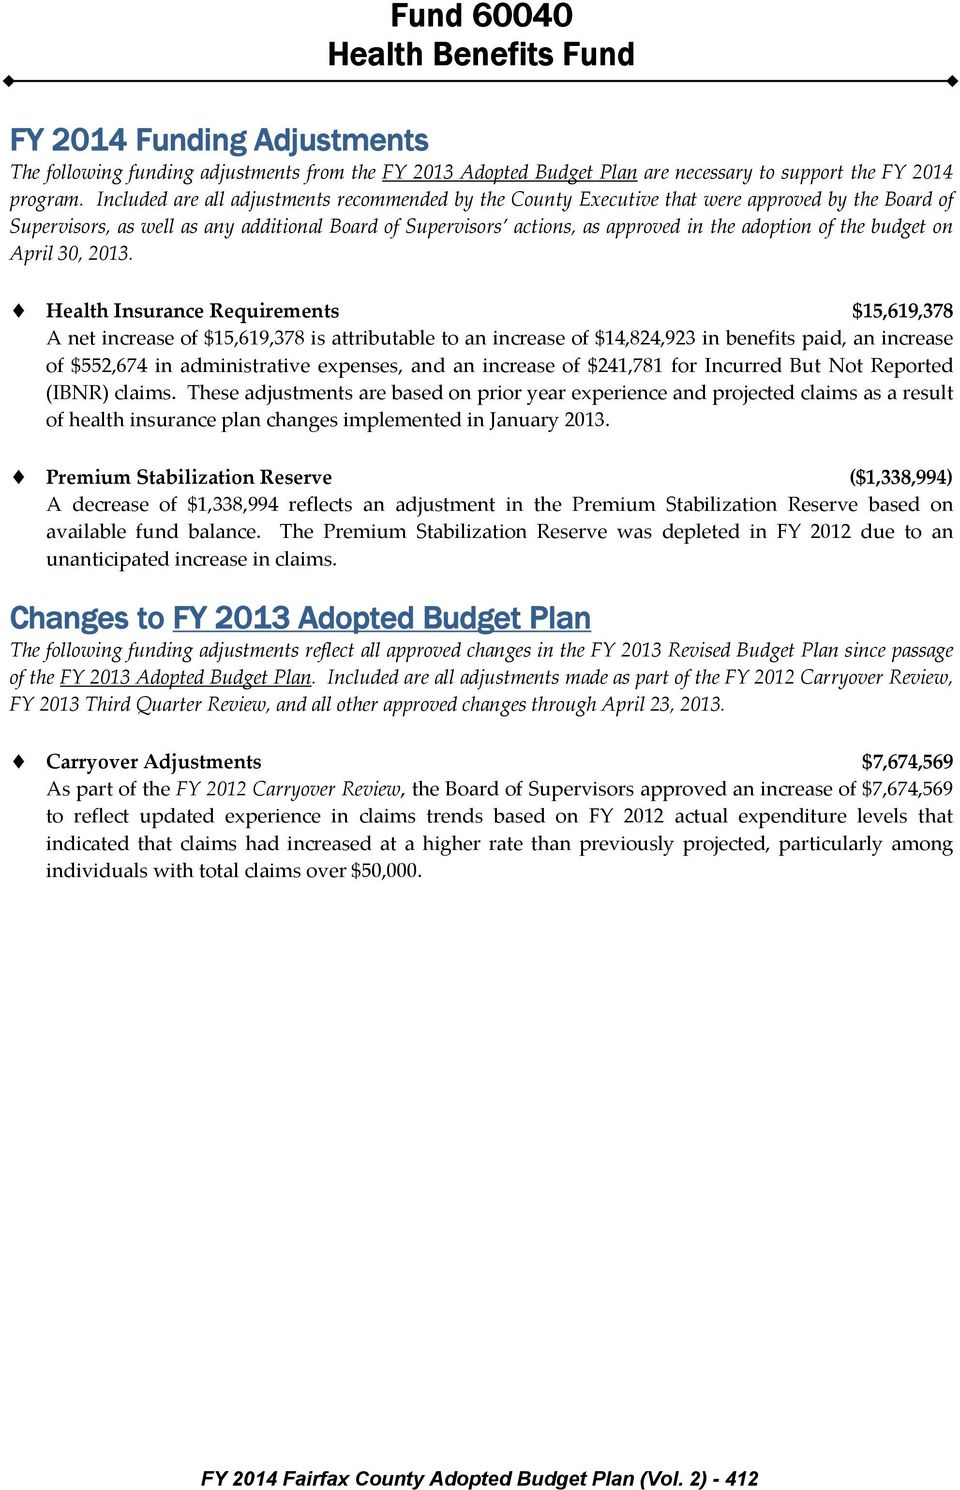 the budget on April 30, 2013.